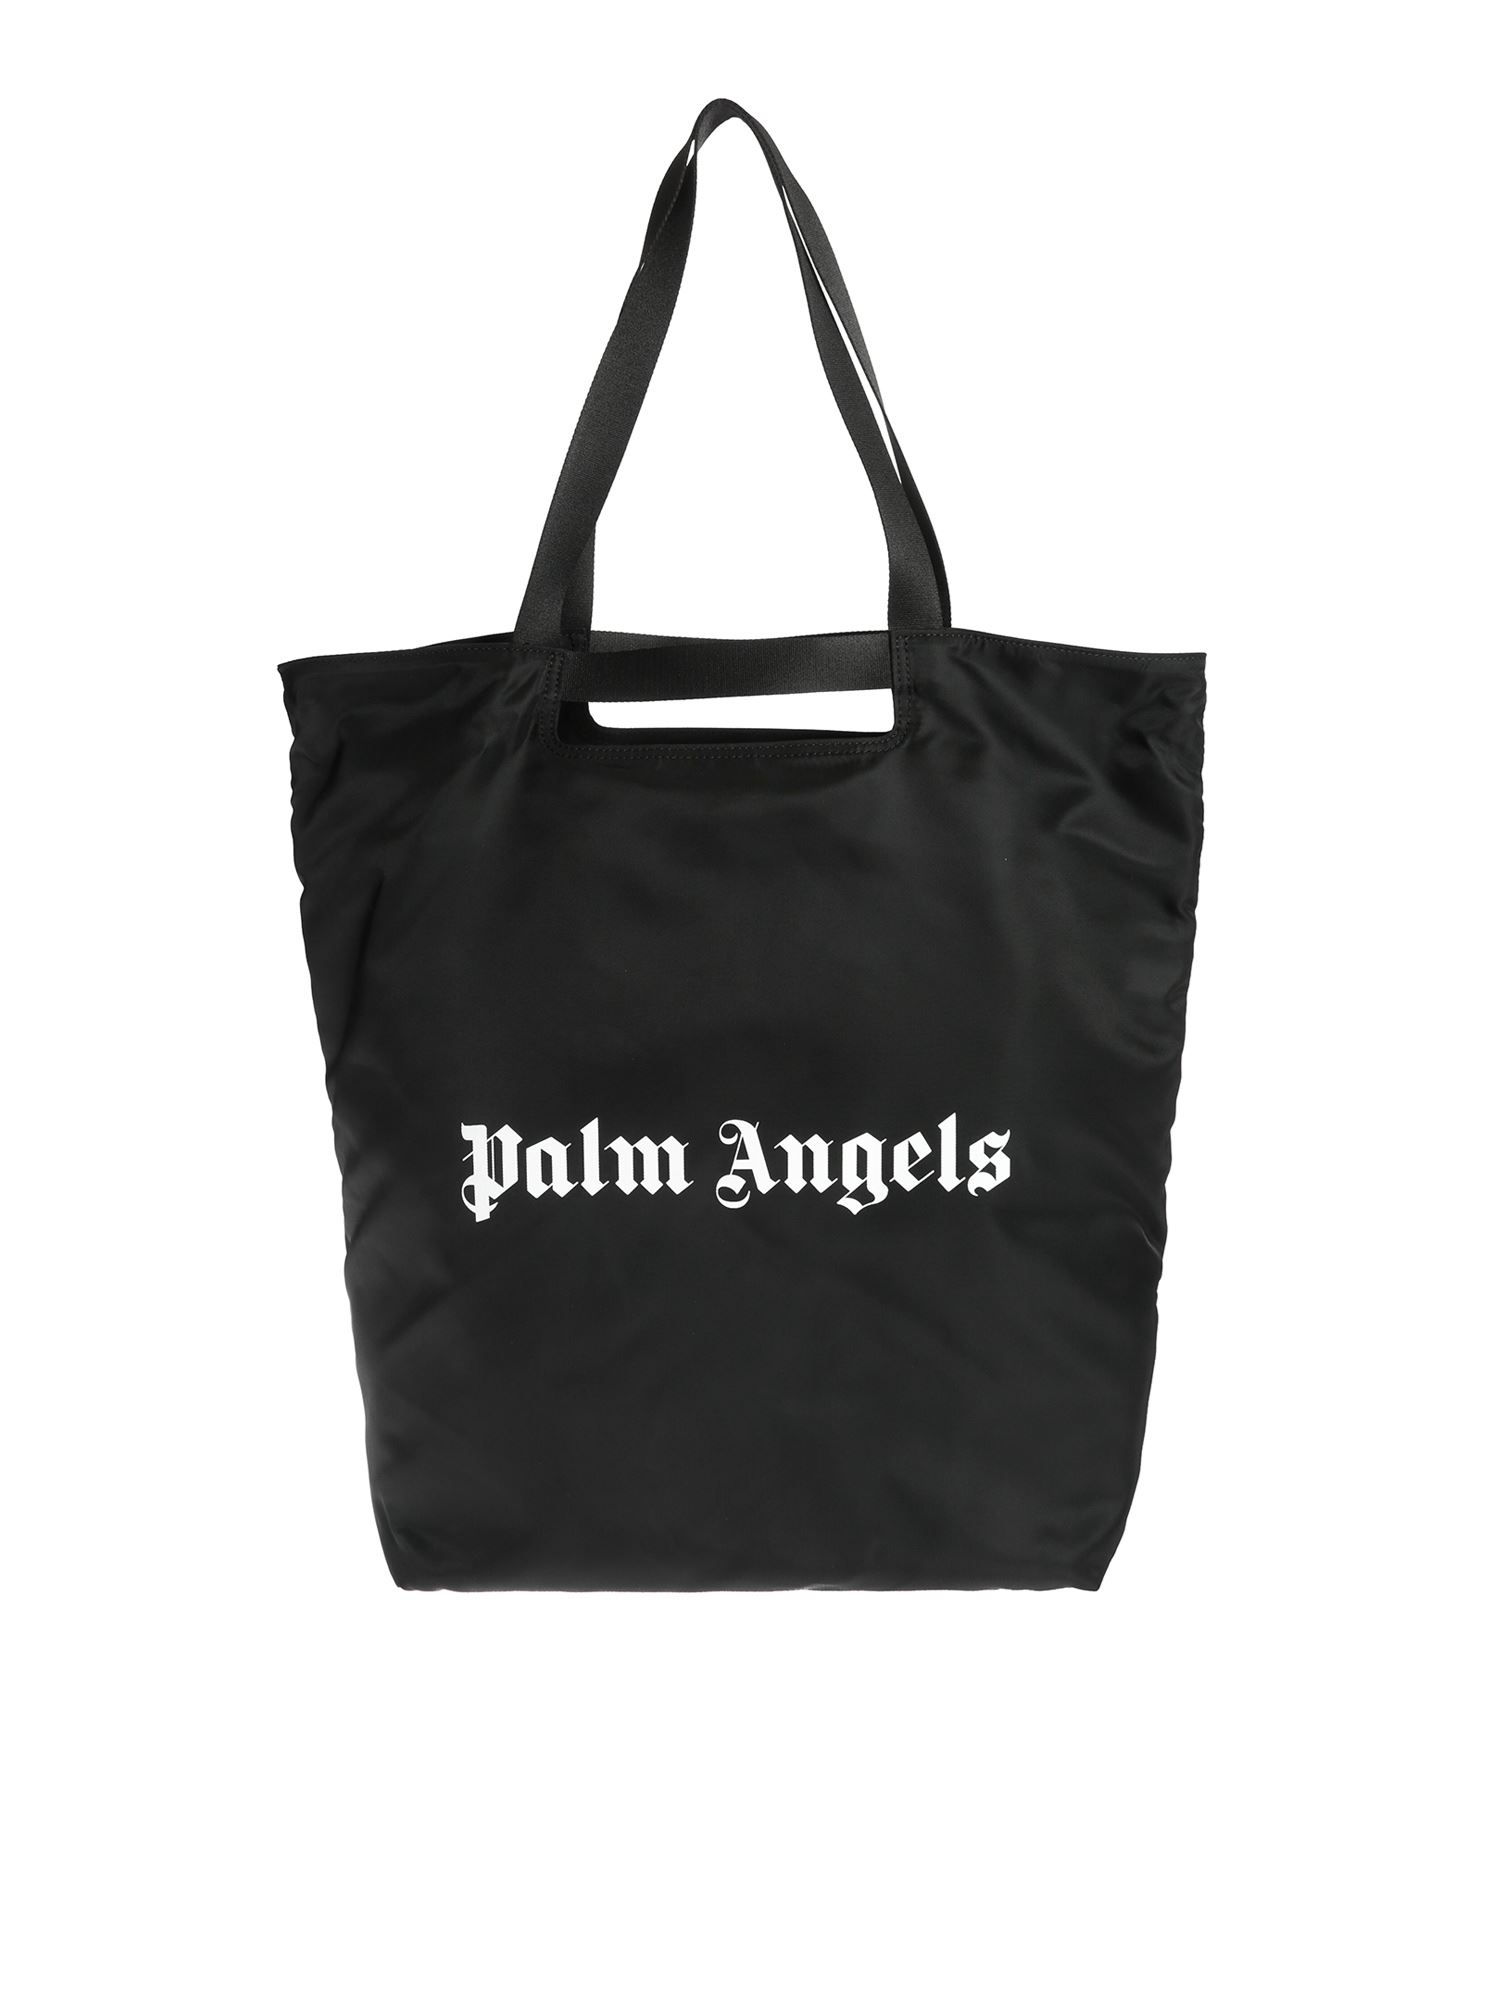 Palm Angels LOGO TOTE BAG IN BLACK